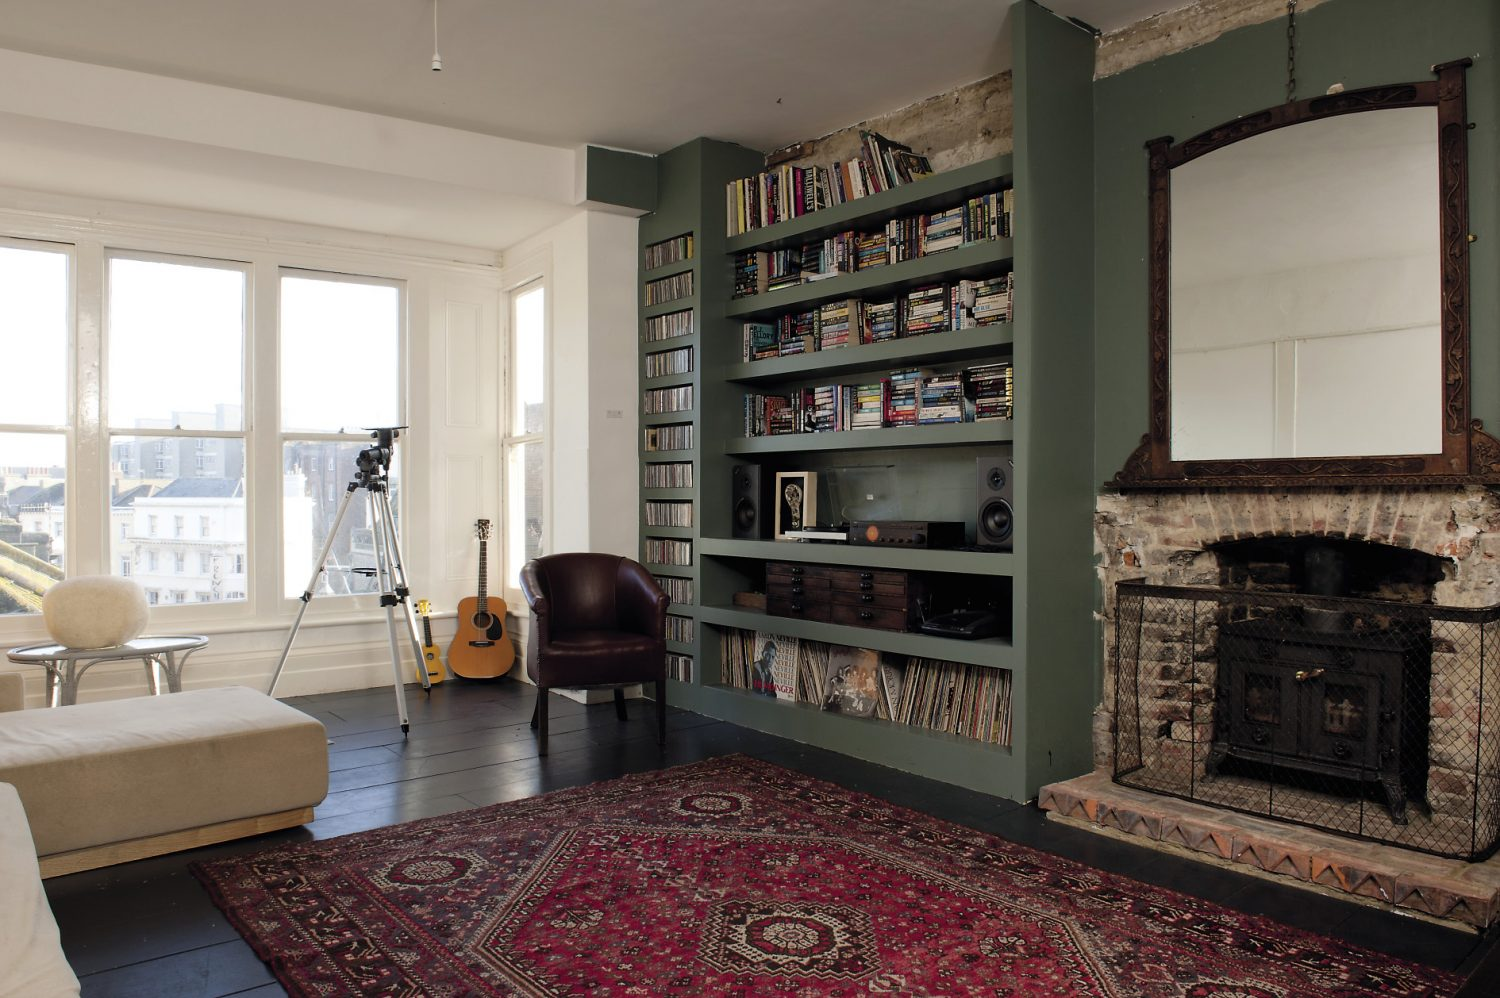 The library gathers around an original brick fireplace, above which hangs an arts and crafts mirror. The windows look out over another wonderful roofscape and towards the sea. A tangle of staircases connects the apartment and B&B with the rest of the building...